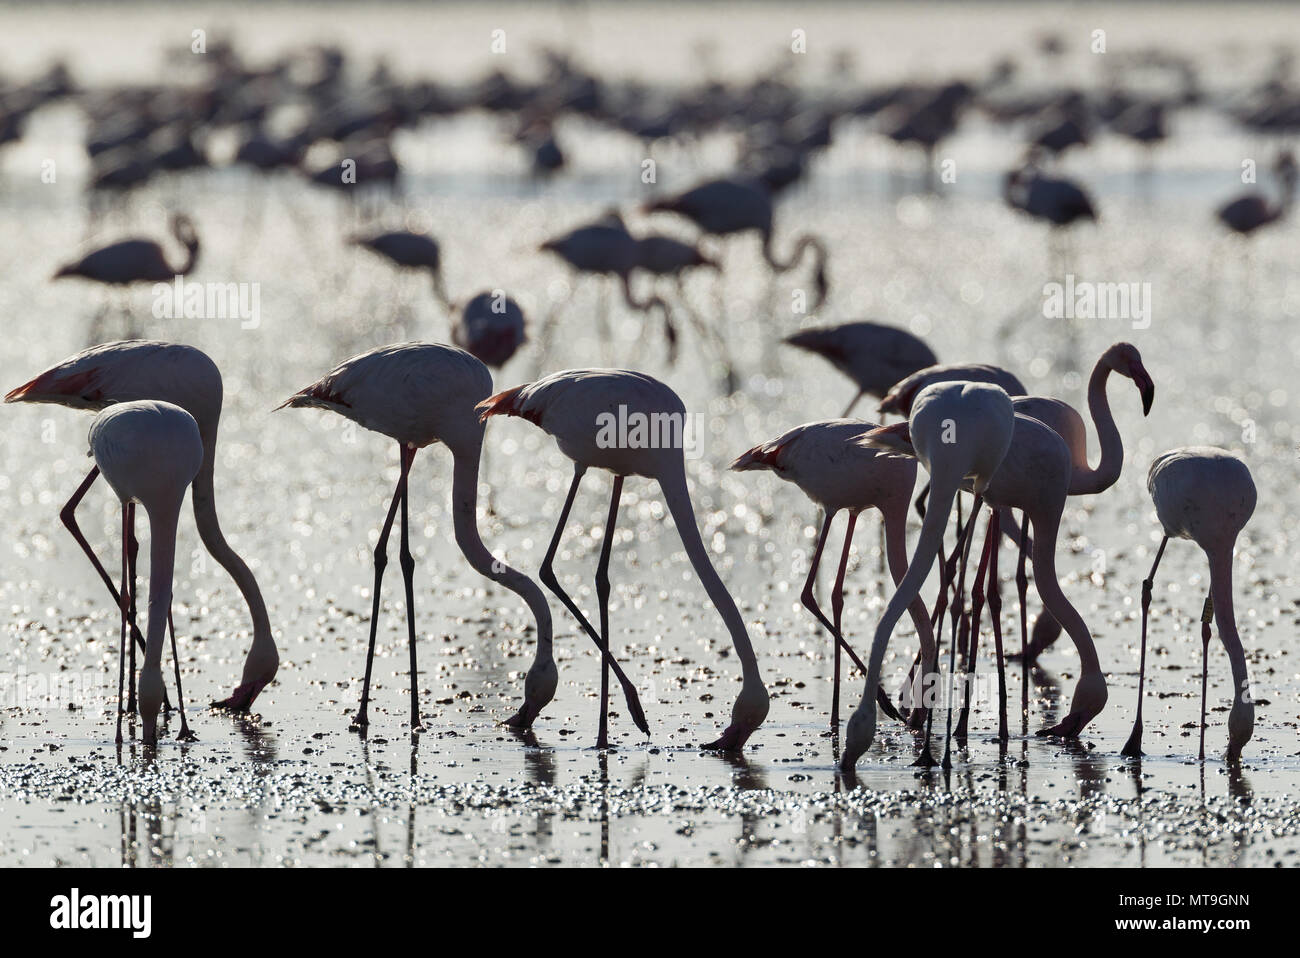 Greater Flamingo (Phoenicopterus roseus). Feeding by filtering the water with their beaks. At the Laguna de Fuente de Piedra near the town of Antequera. This is the largest natural lake in Andalusia and Europe's only inland breeding ground for this species. Malaga province, Andalusia, Spain. Stock Photo